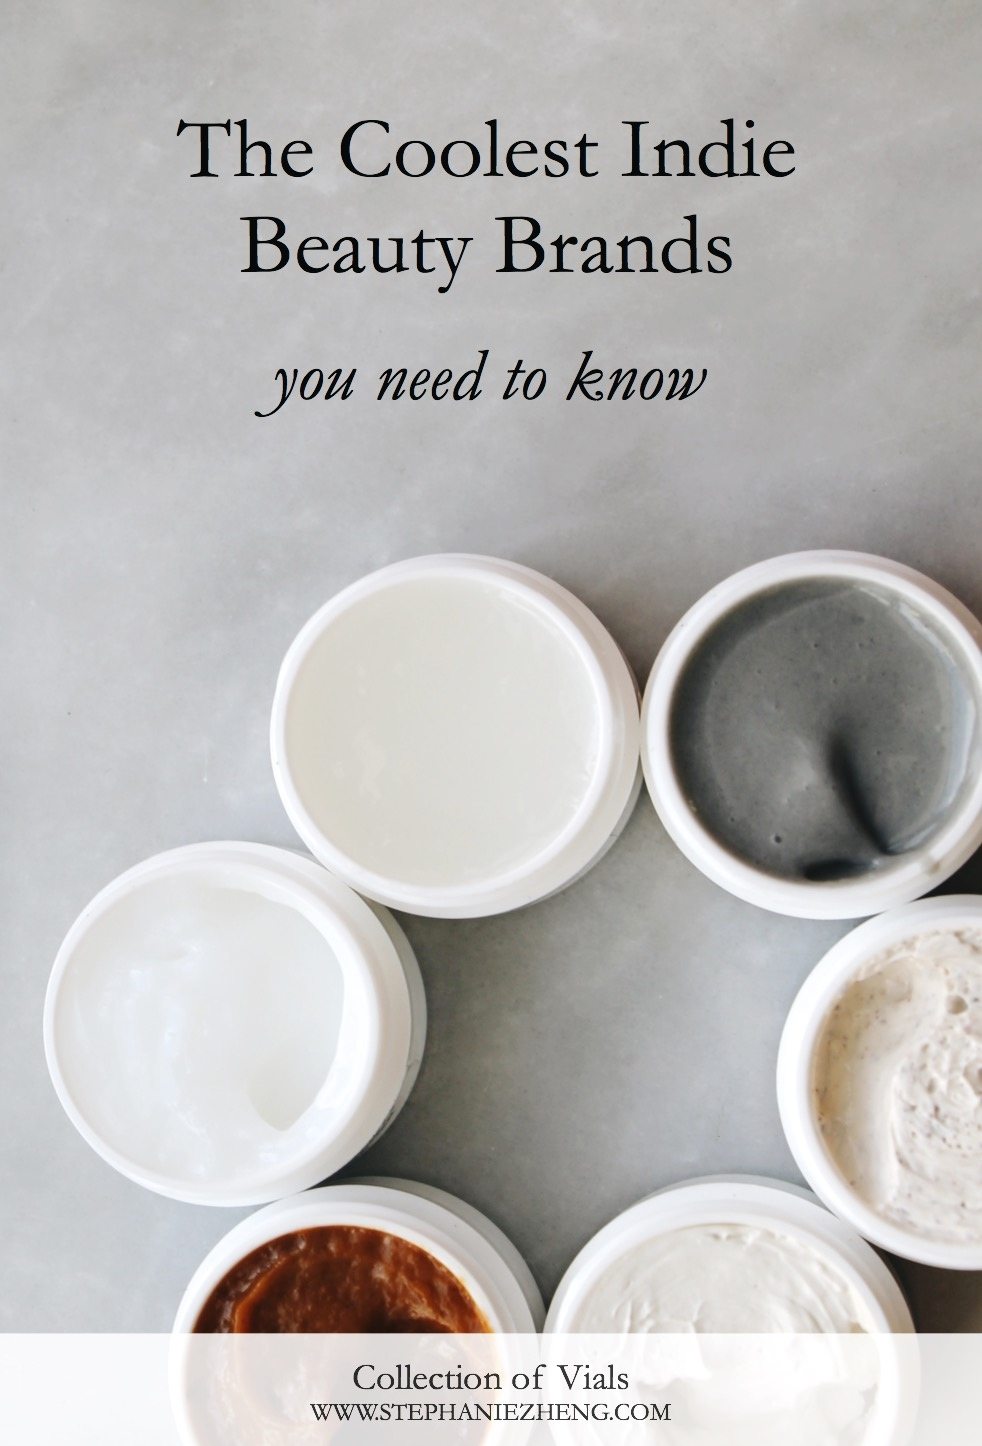 Coolest Indie Beauty Brands